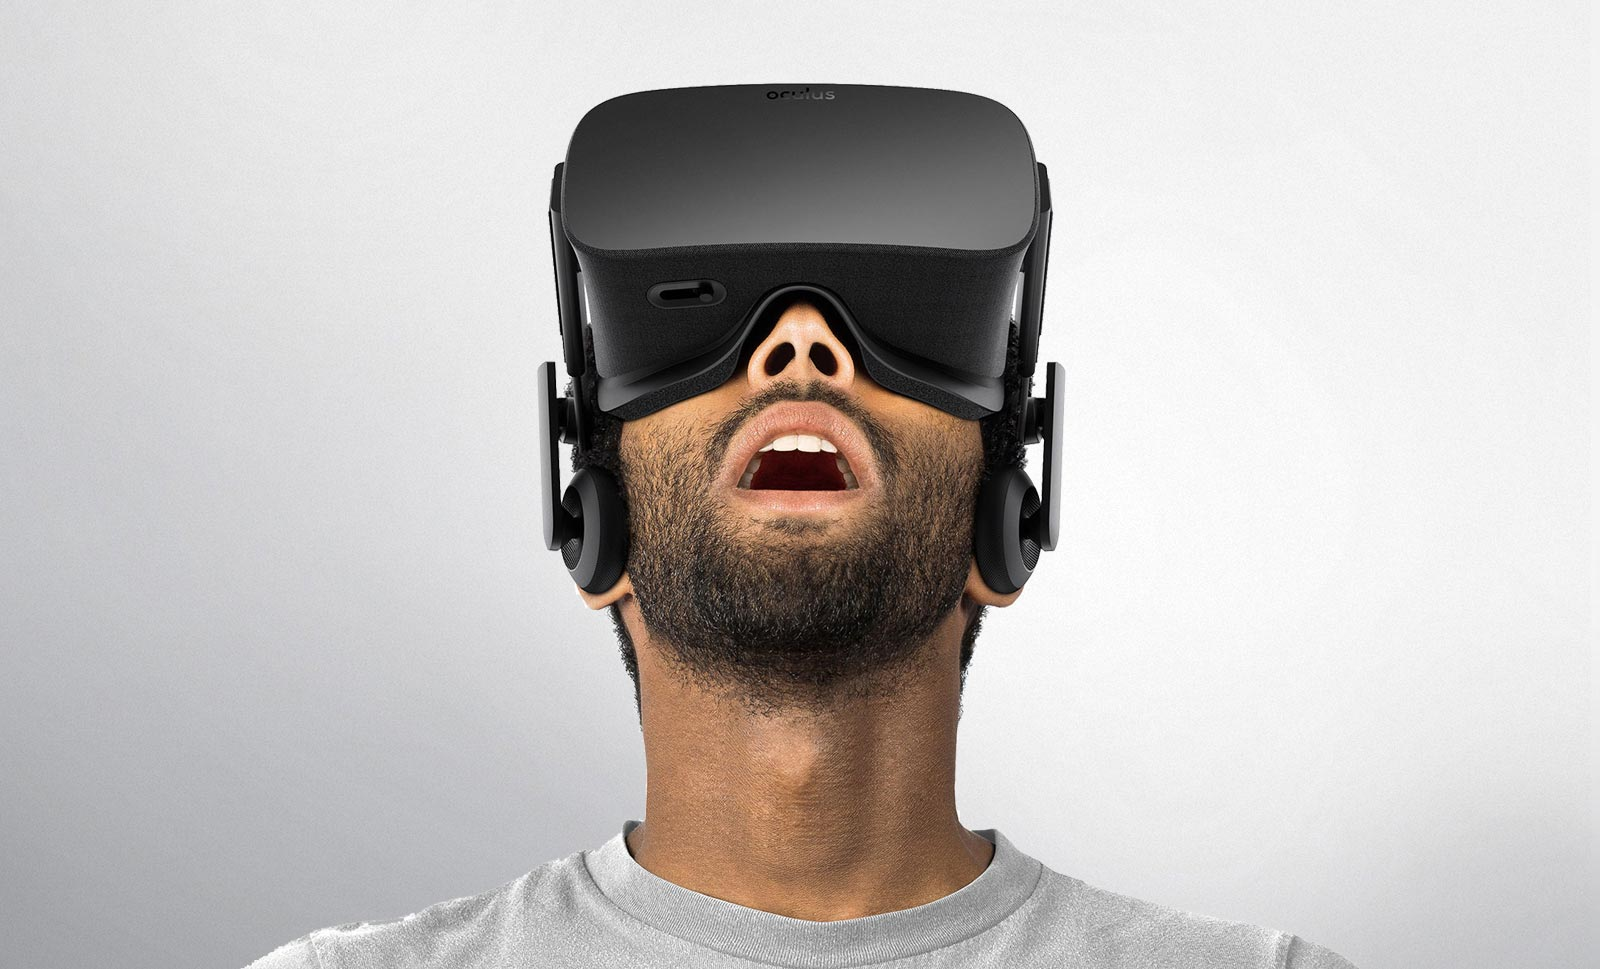 GEAR VR TO HIT MARKET THIS JUNE PRICE NOT CONFIRMED